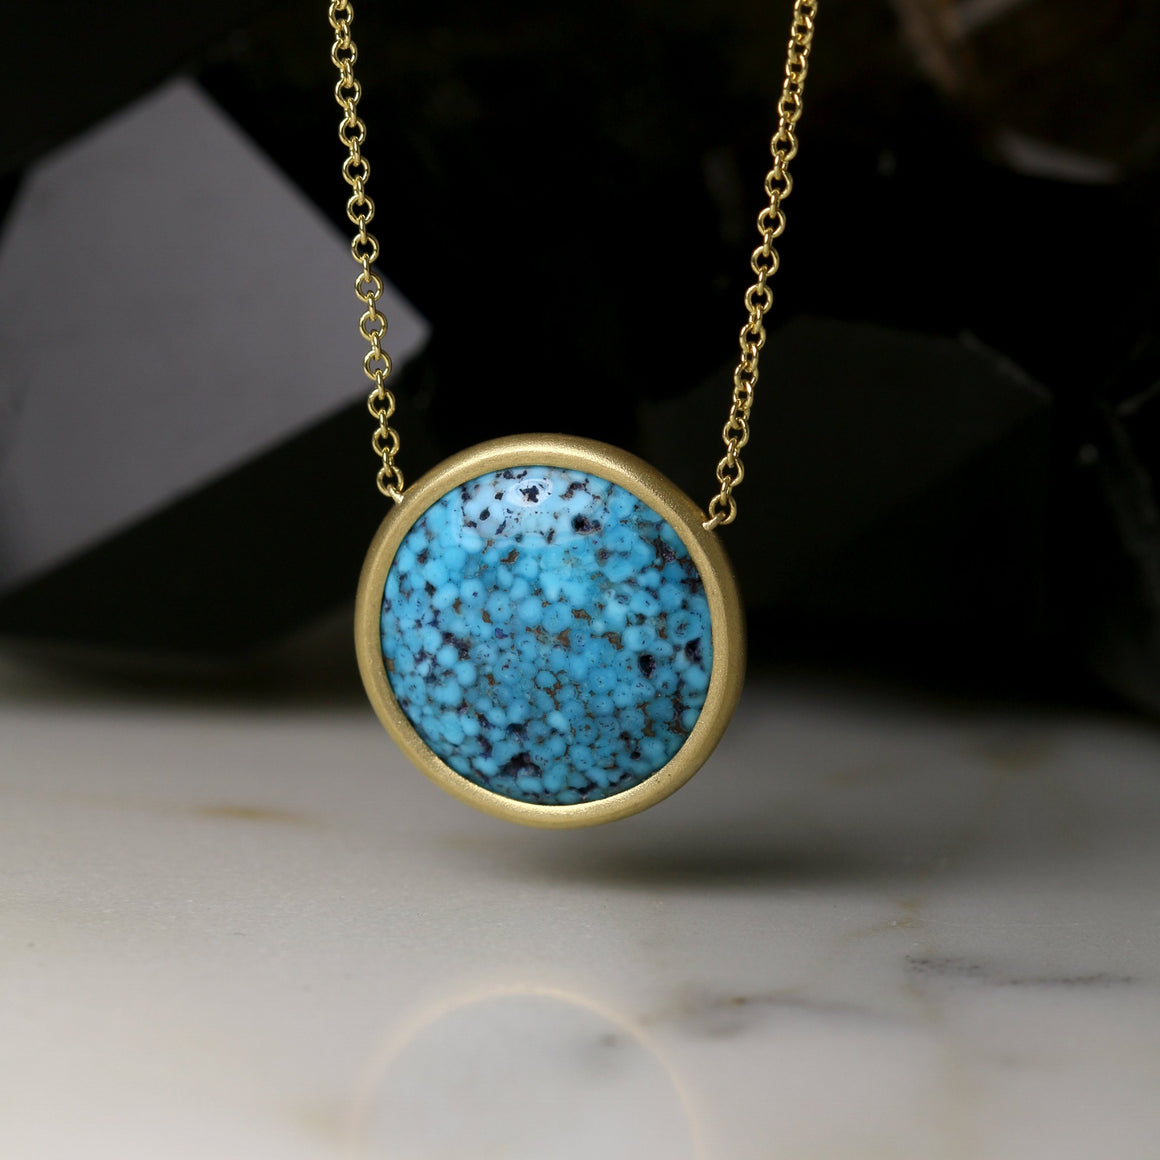 Kingman Turquoise Necklace in Yellow Gold - Small